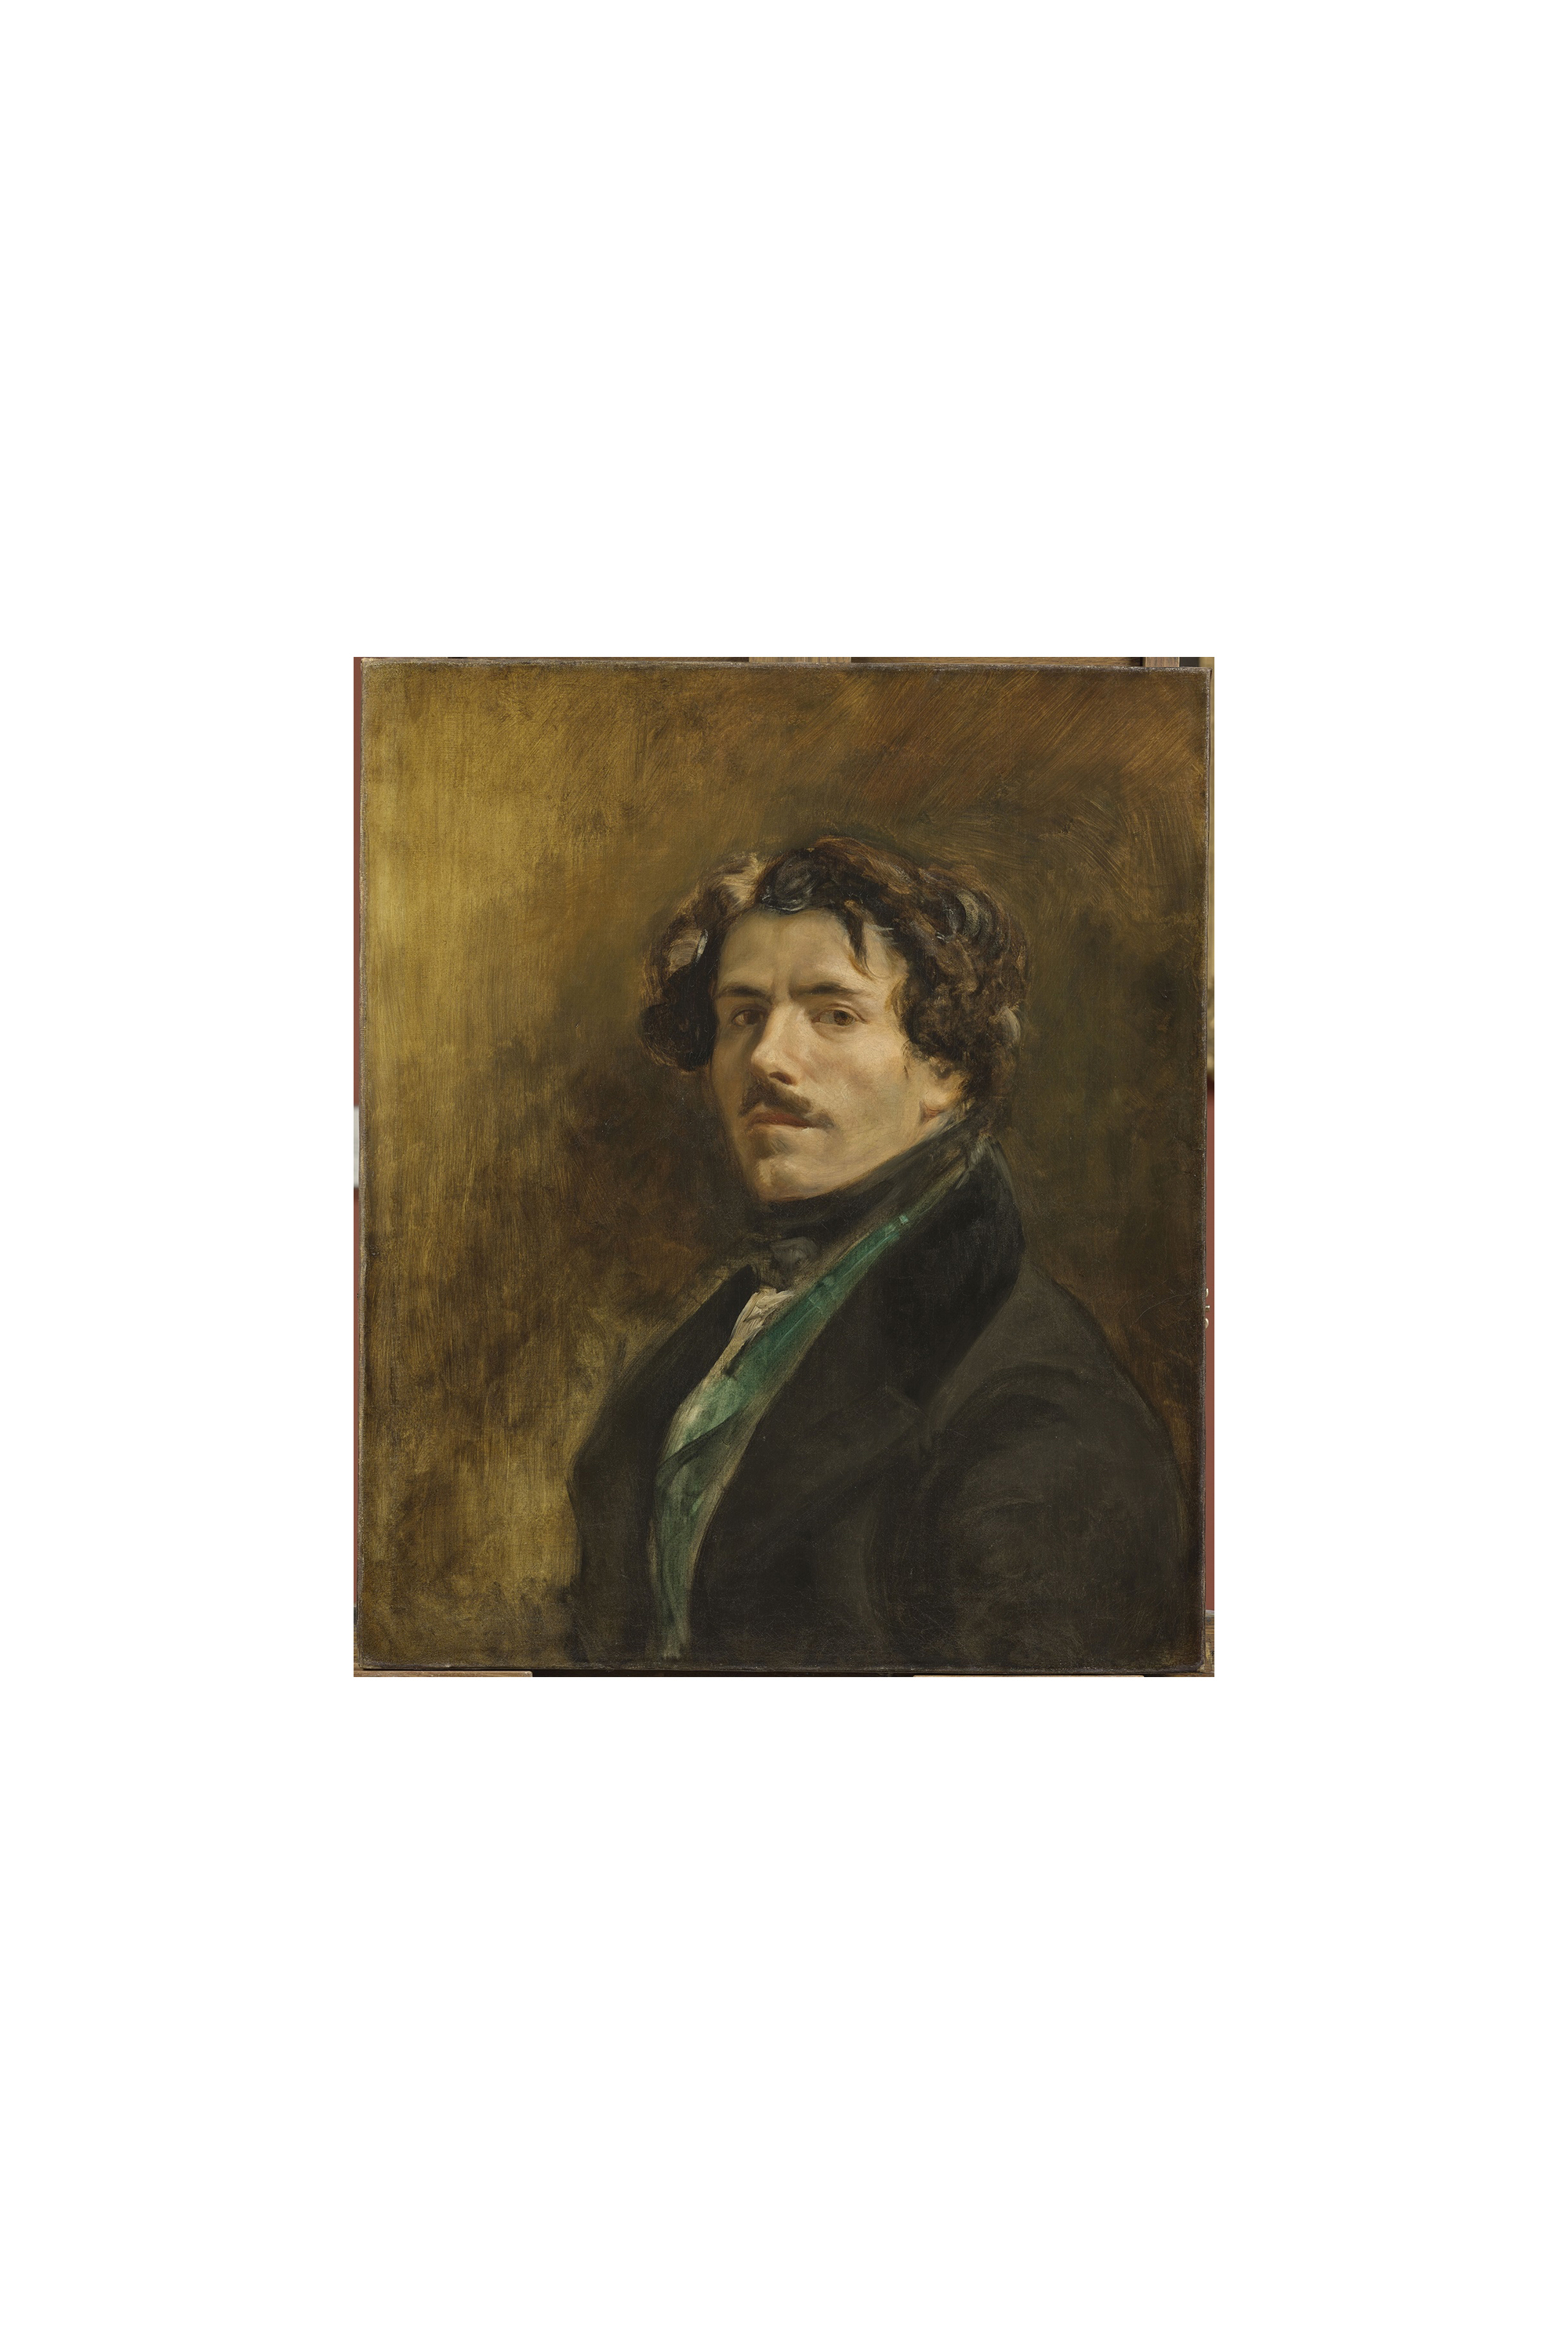 Eugène Delacroix, Self-Portrait with Green Vest, ca. 1837